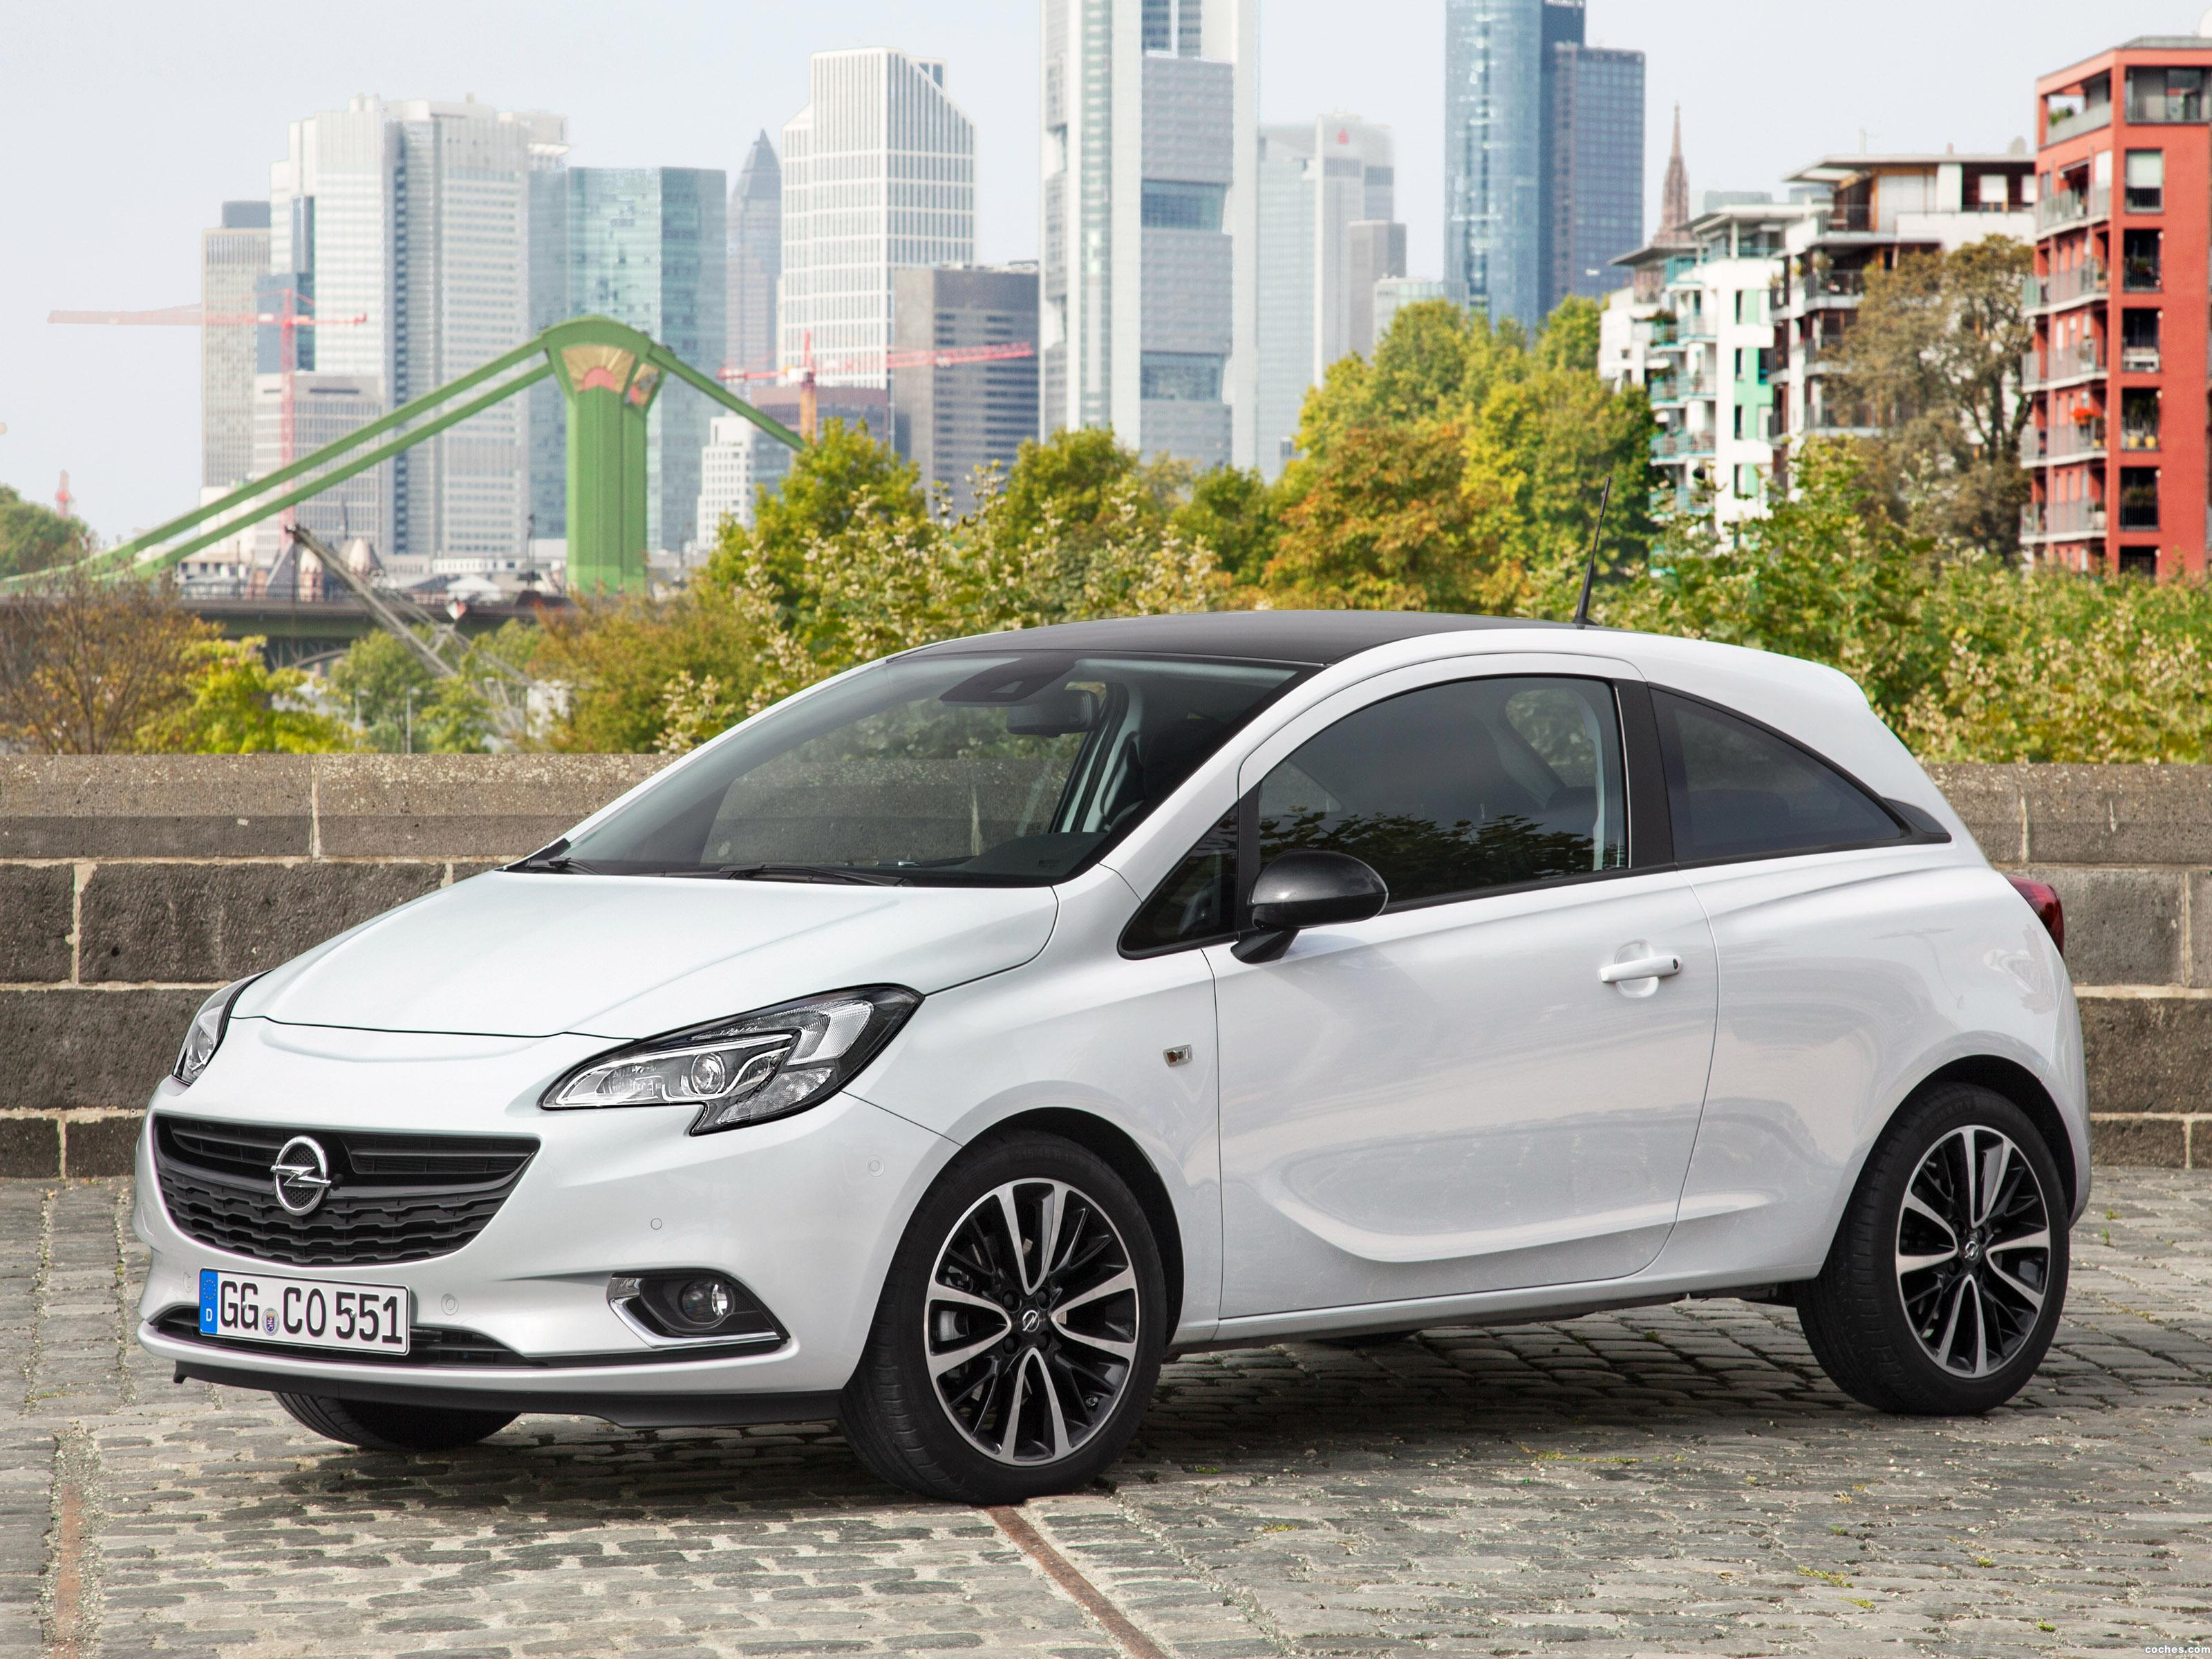 fotos de opel corsa 3 puertas color edition 2015 foto 1